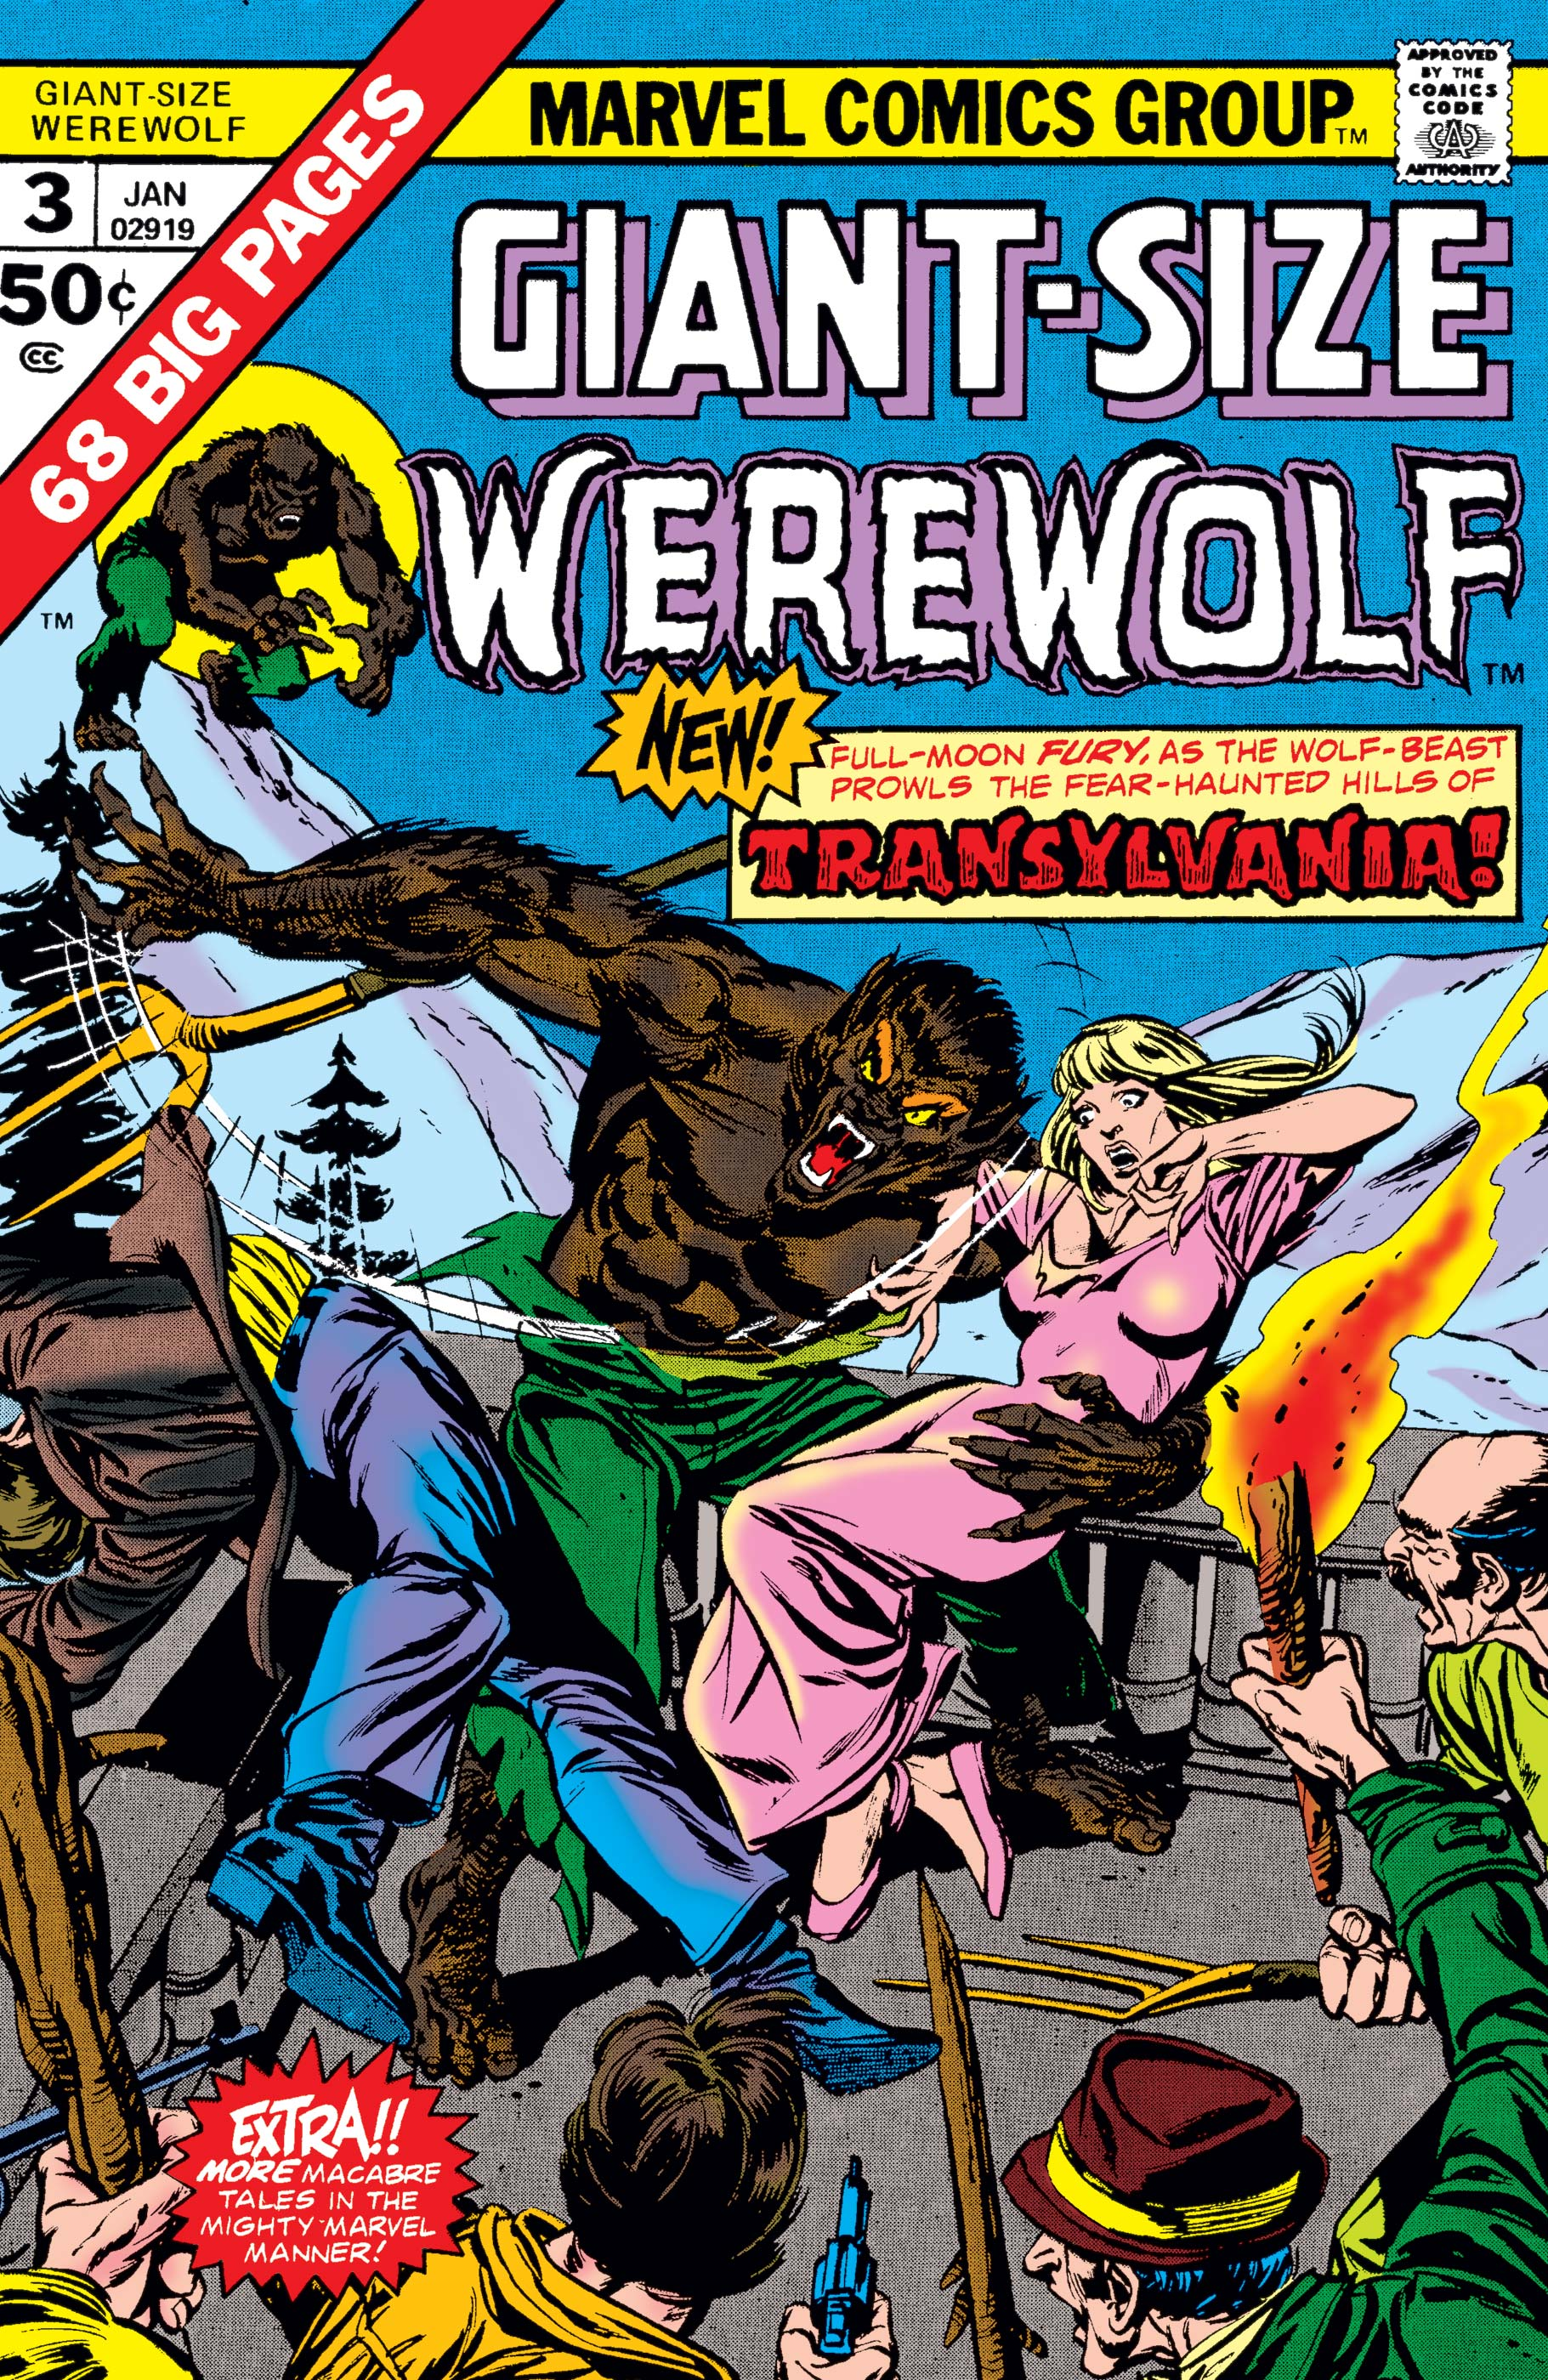 Giant-Size Werewolf by Night (1974) #3